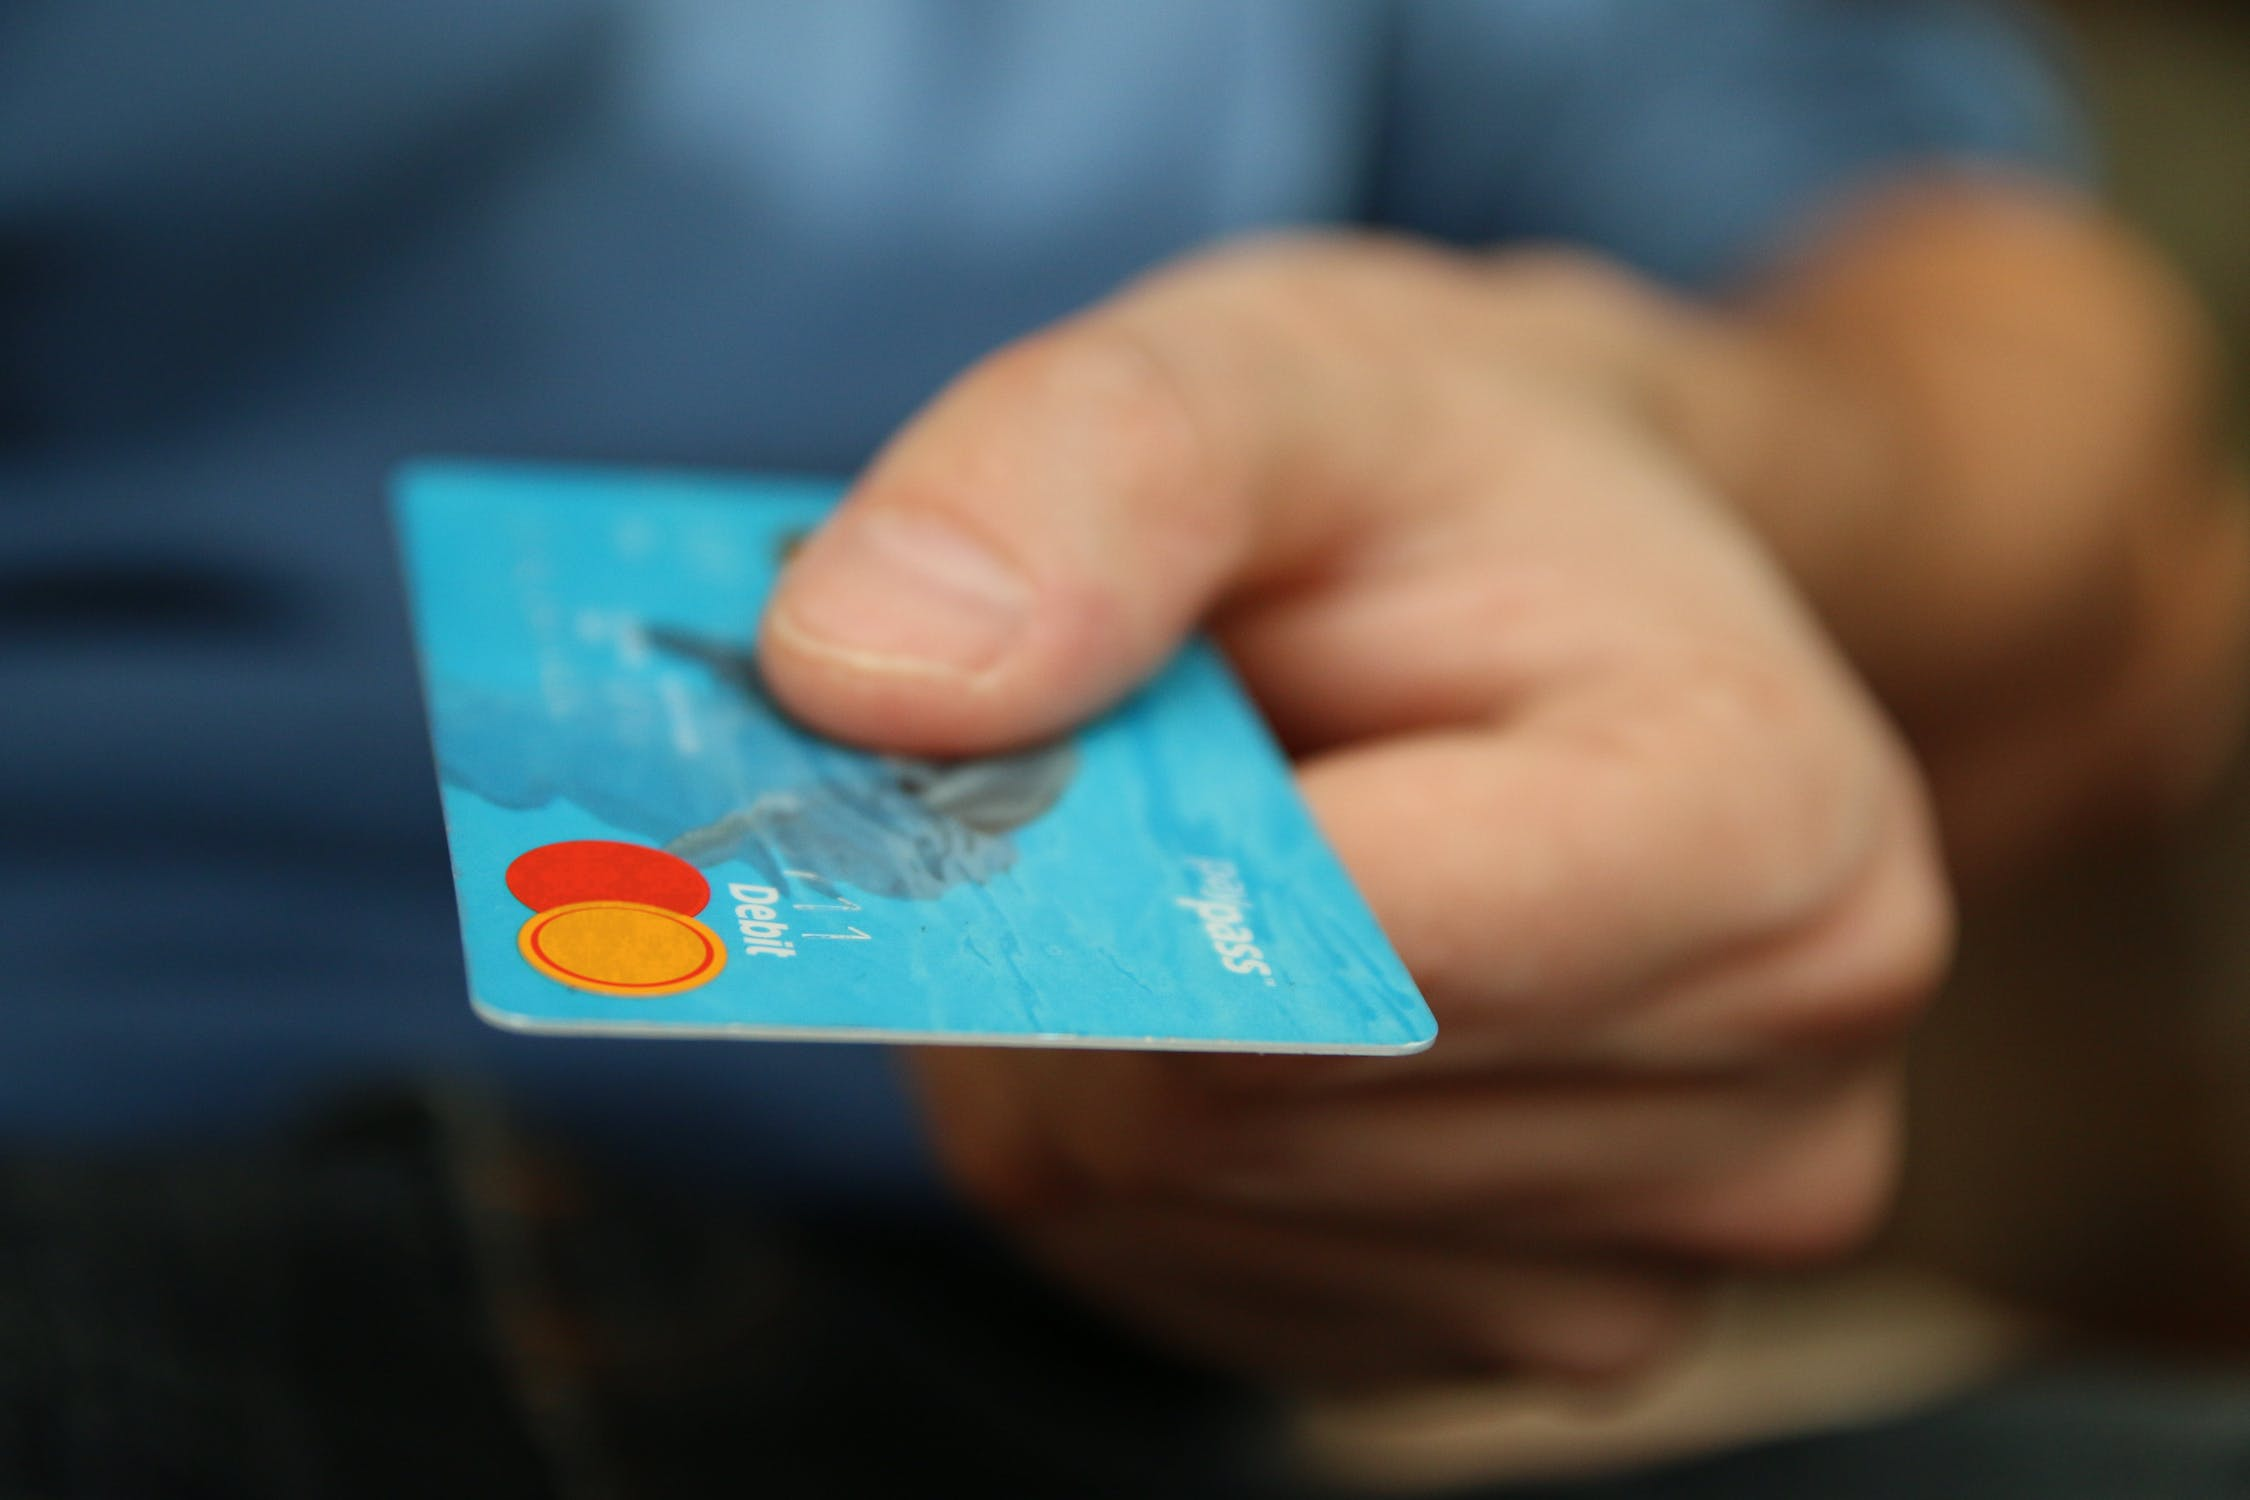 7 steps on building business credit - Apply For Business Credit Card With Duns Number